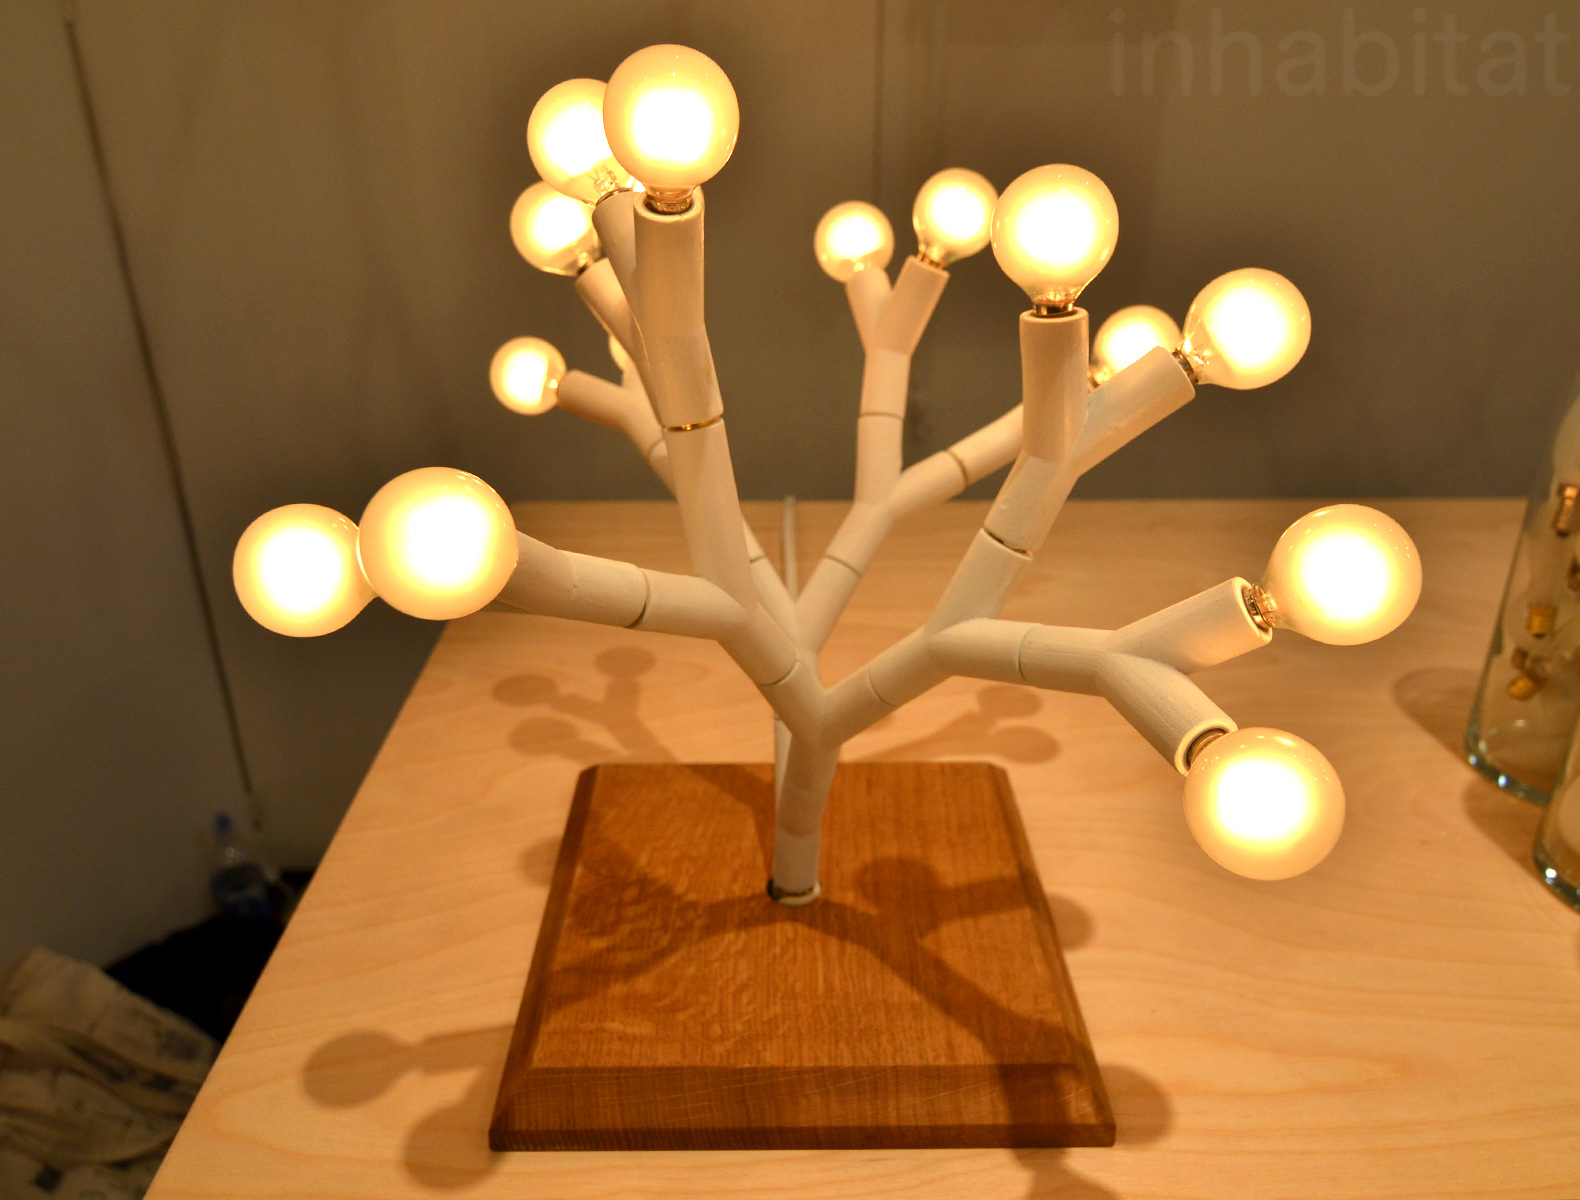 Furniture Design New York splyt's led light trees are made from modular parts – so you can